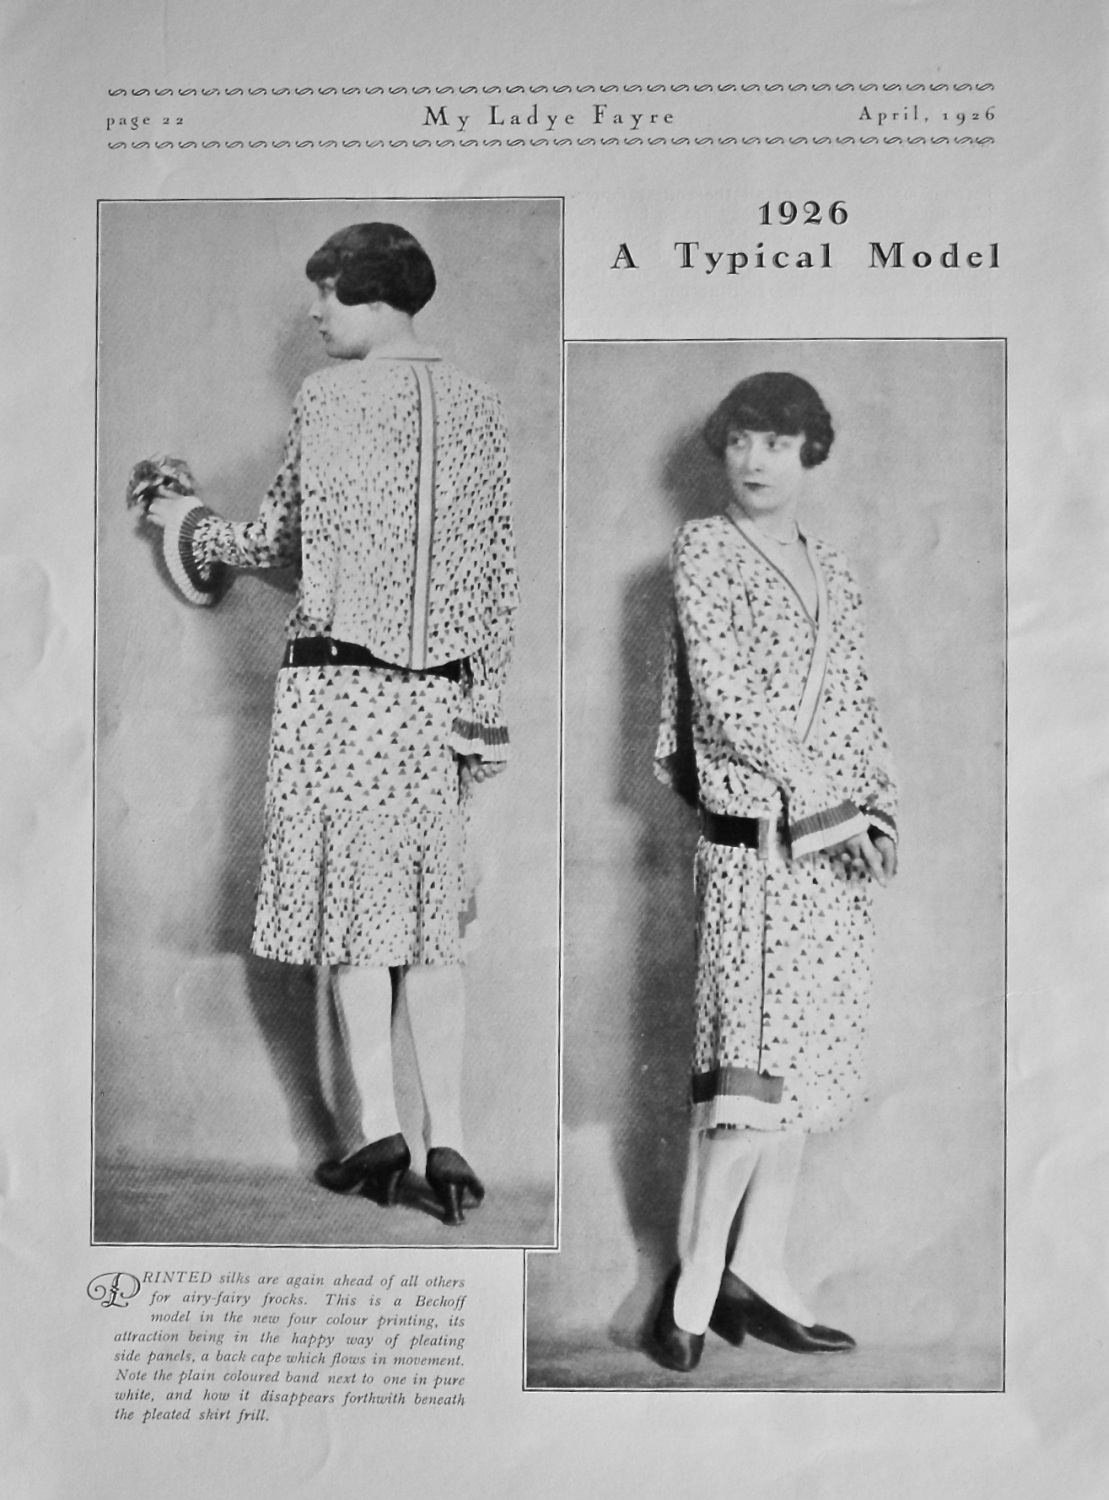 A Typical Model. 1926.